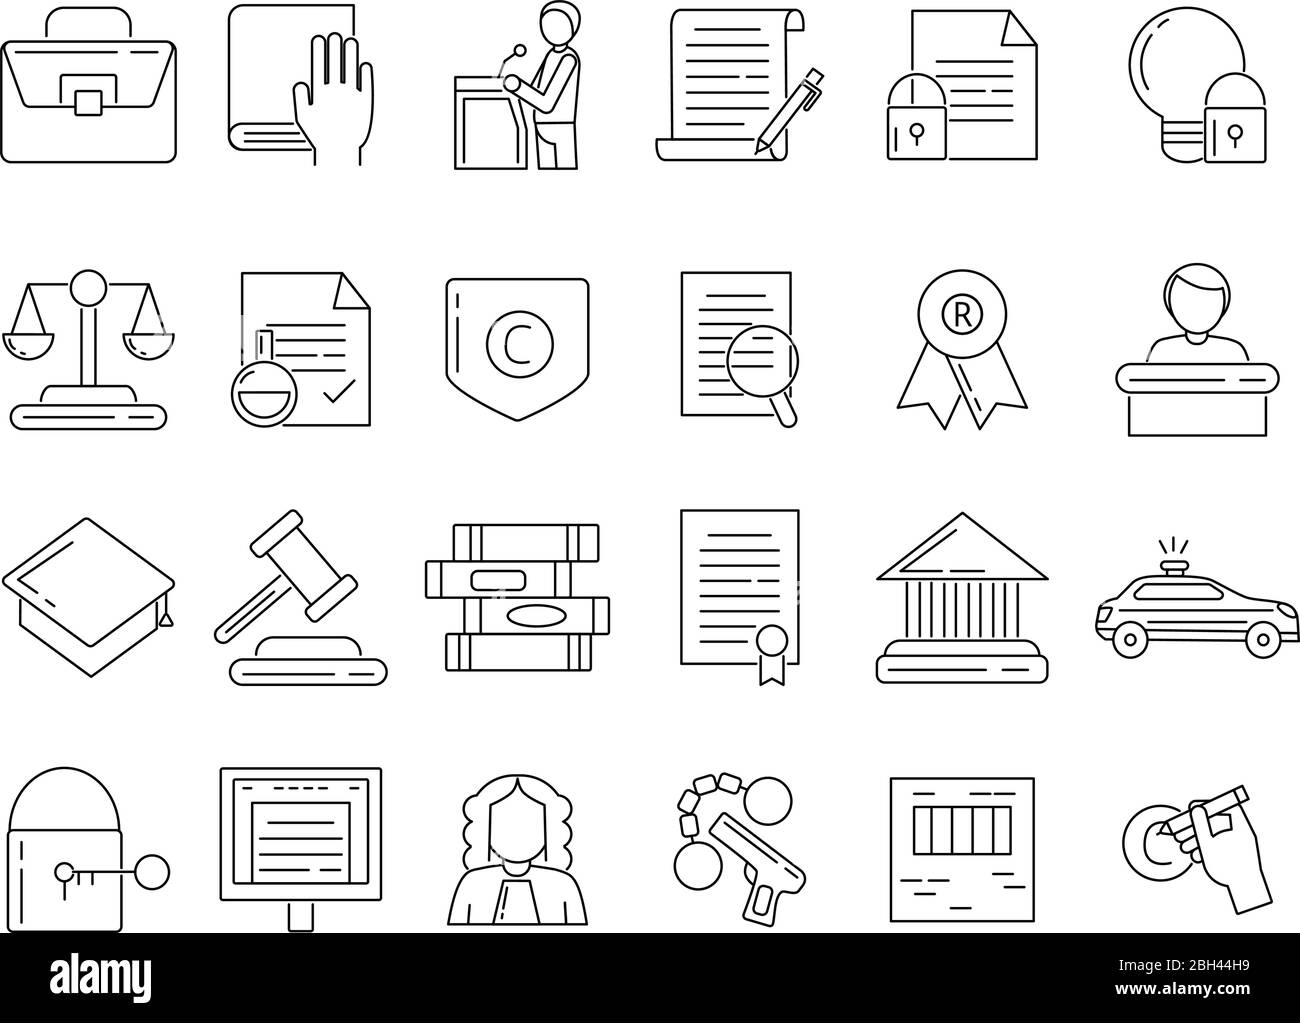 Linear symbols of lawyer, criminals and copyright protection. Jurisprudence legal, tribunal and judgment line style. Vector illustration Stock Vector